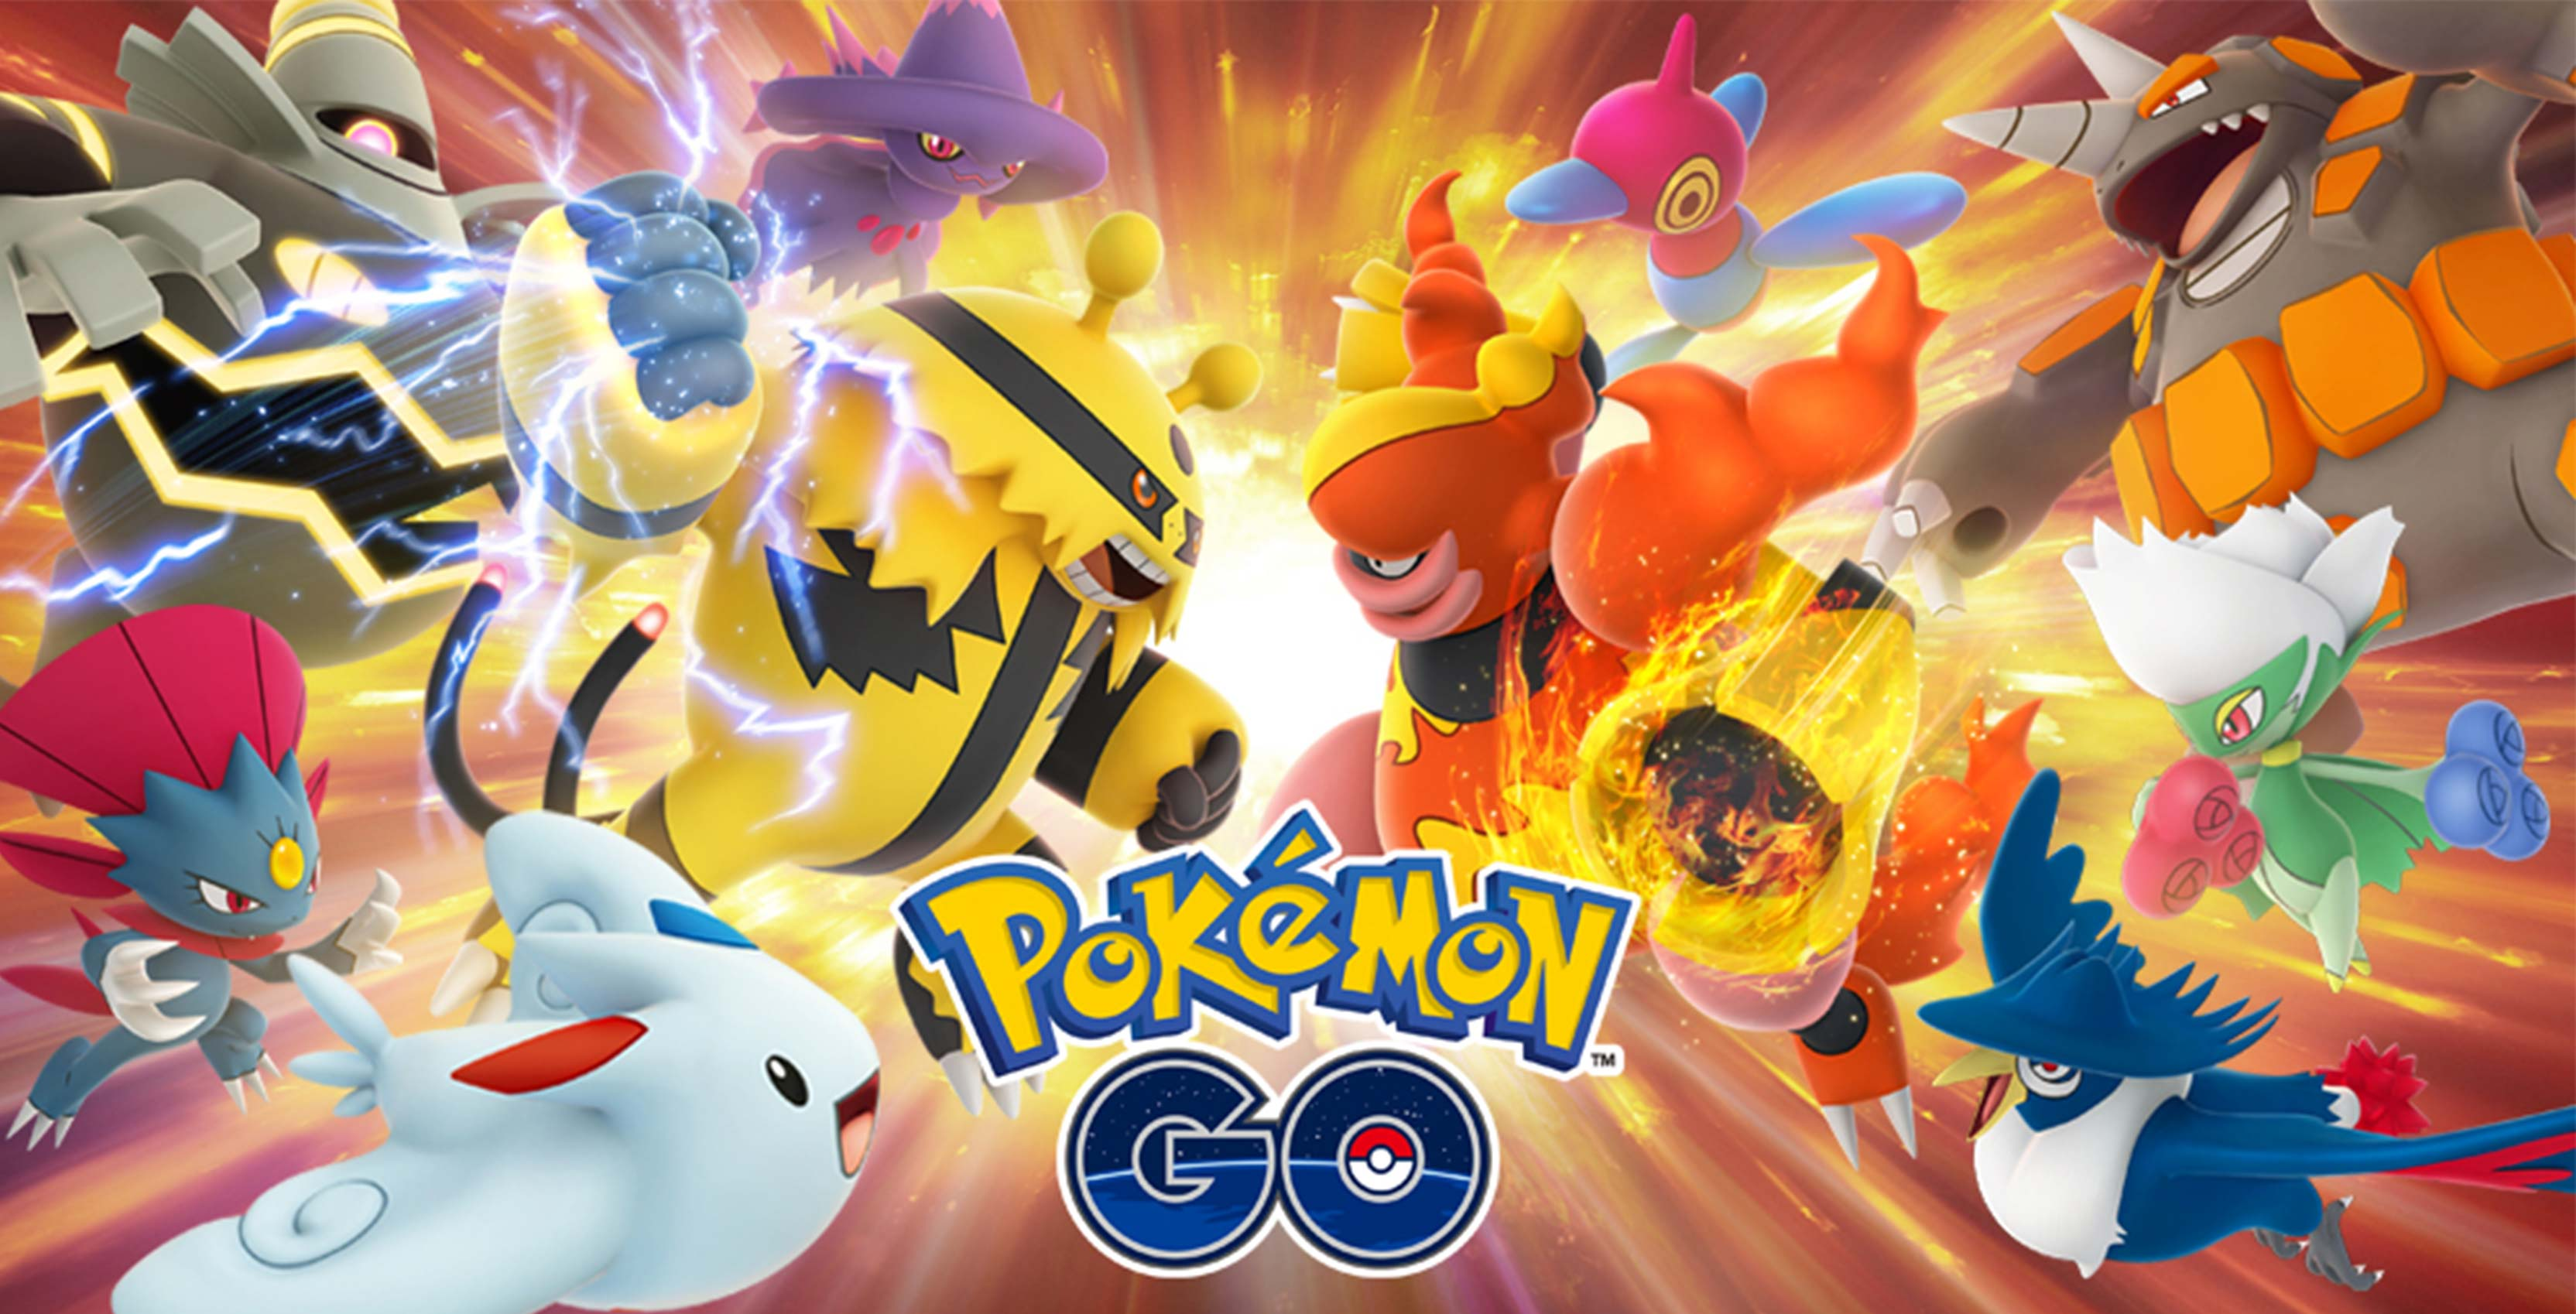 Pokémon Go's PvP Trainer Battles Will Officially Commence Later This Month